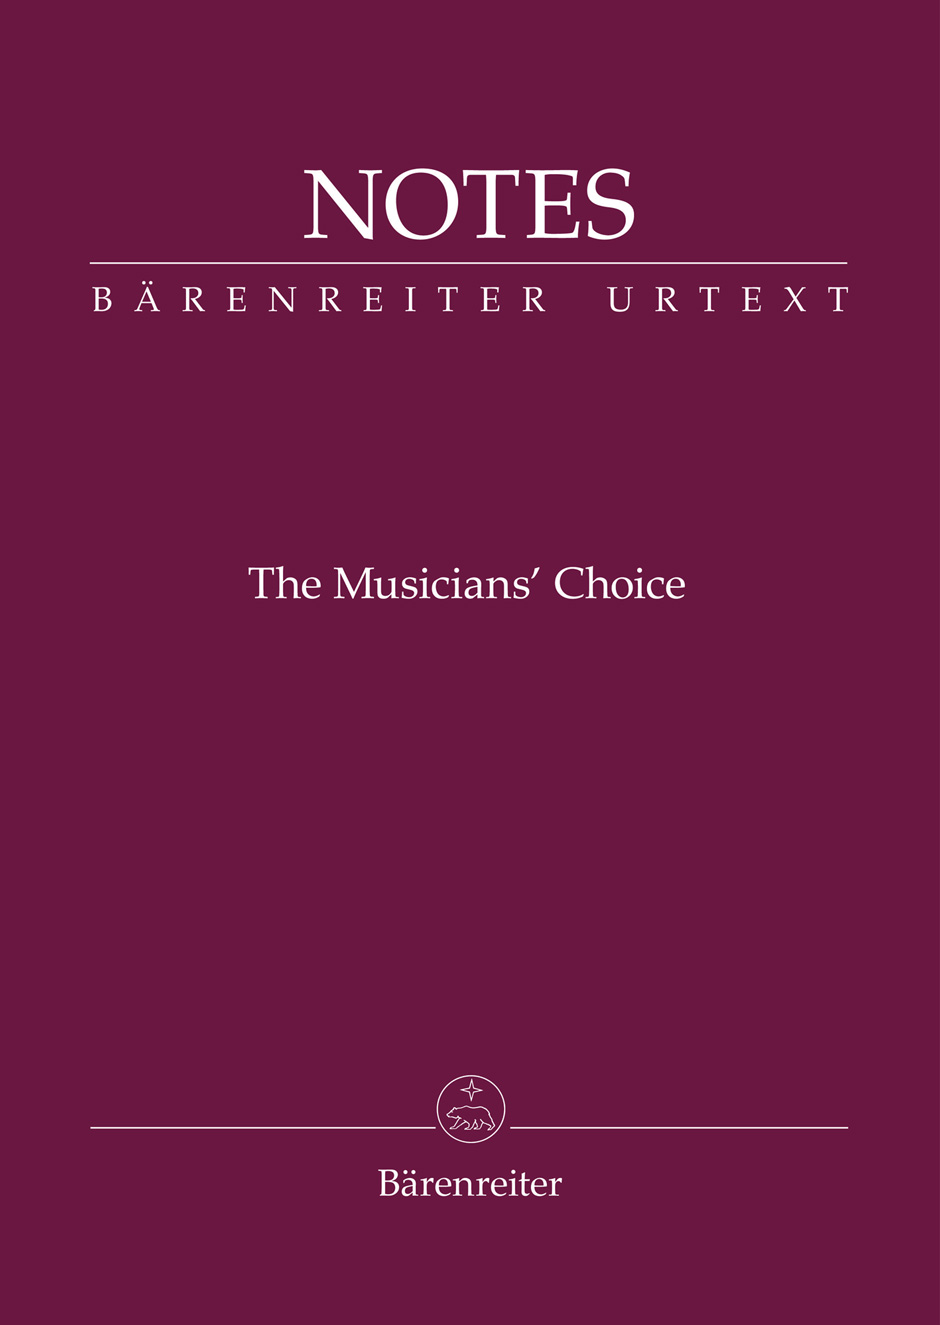 Bärenreiter Notes (fialový)